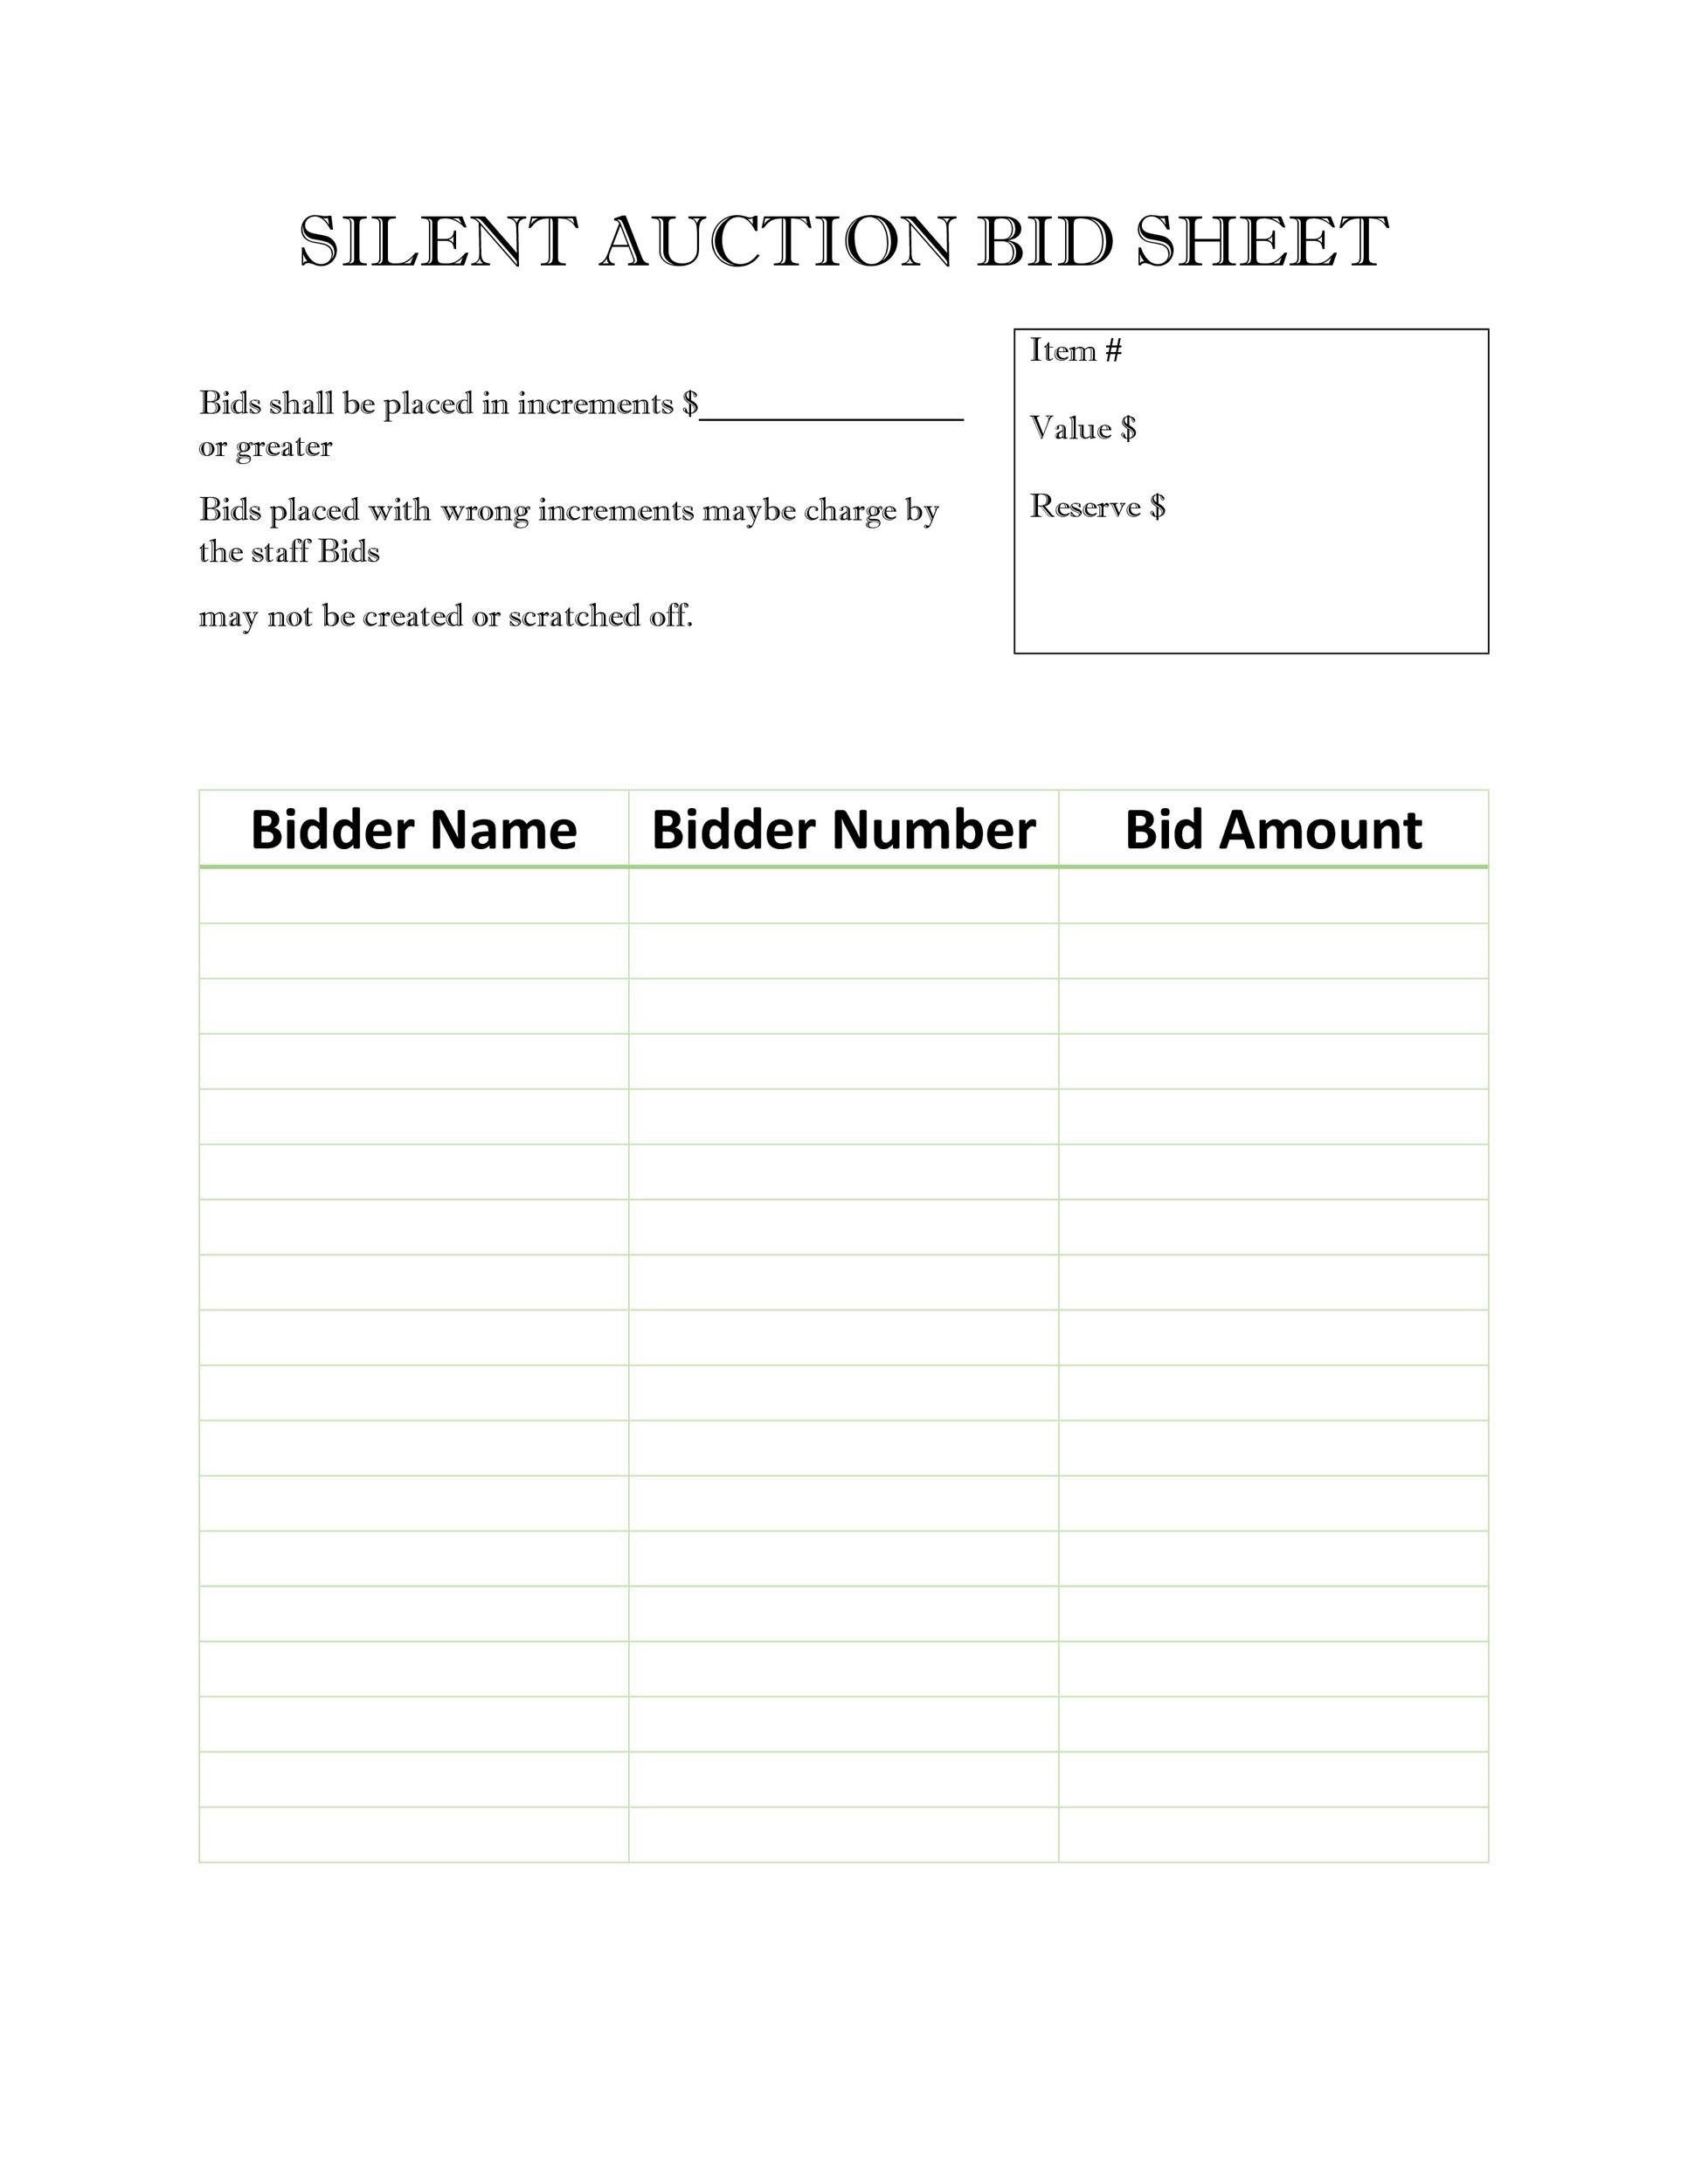 silent auction bidding form